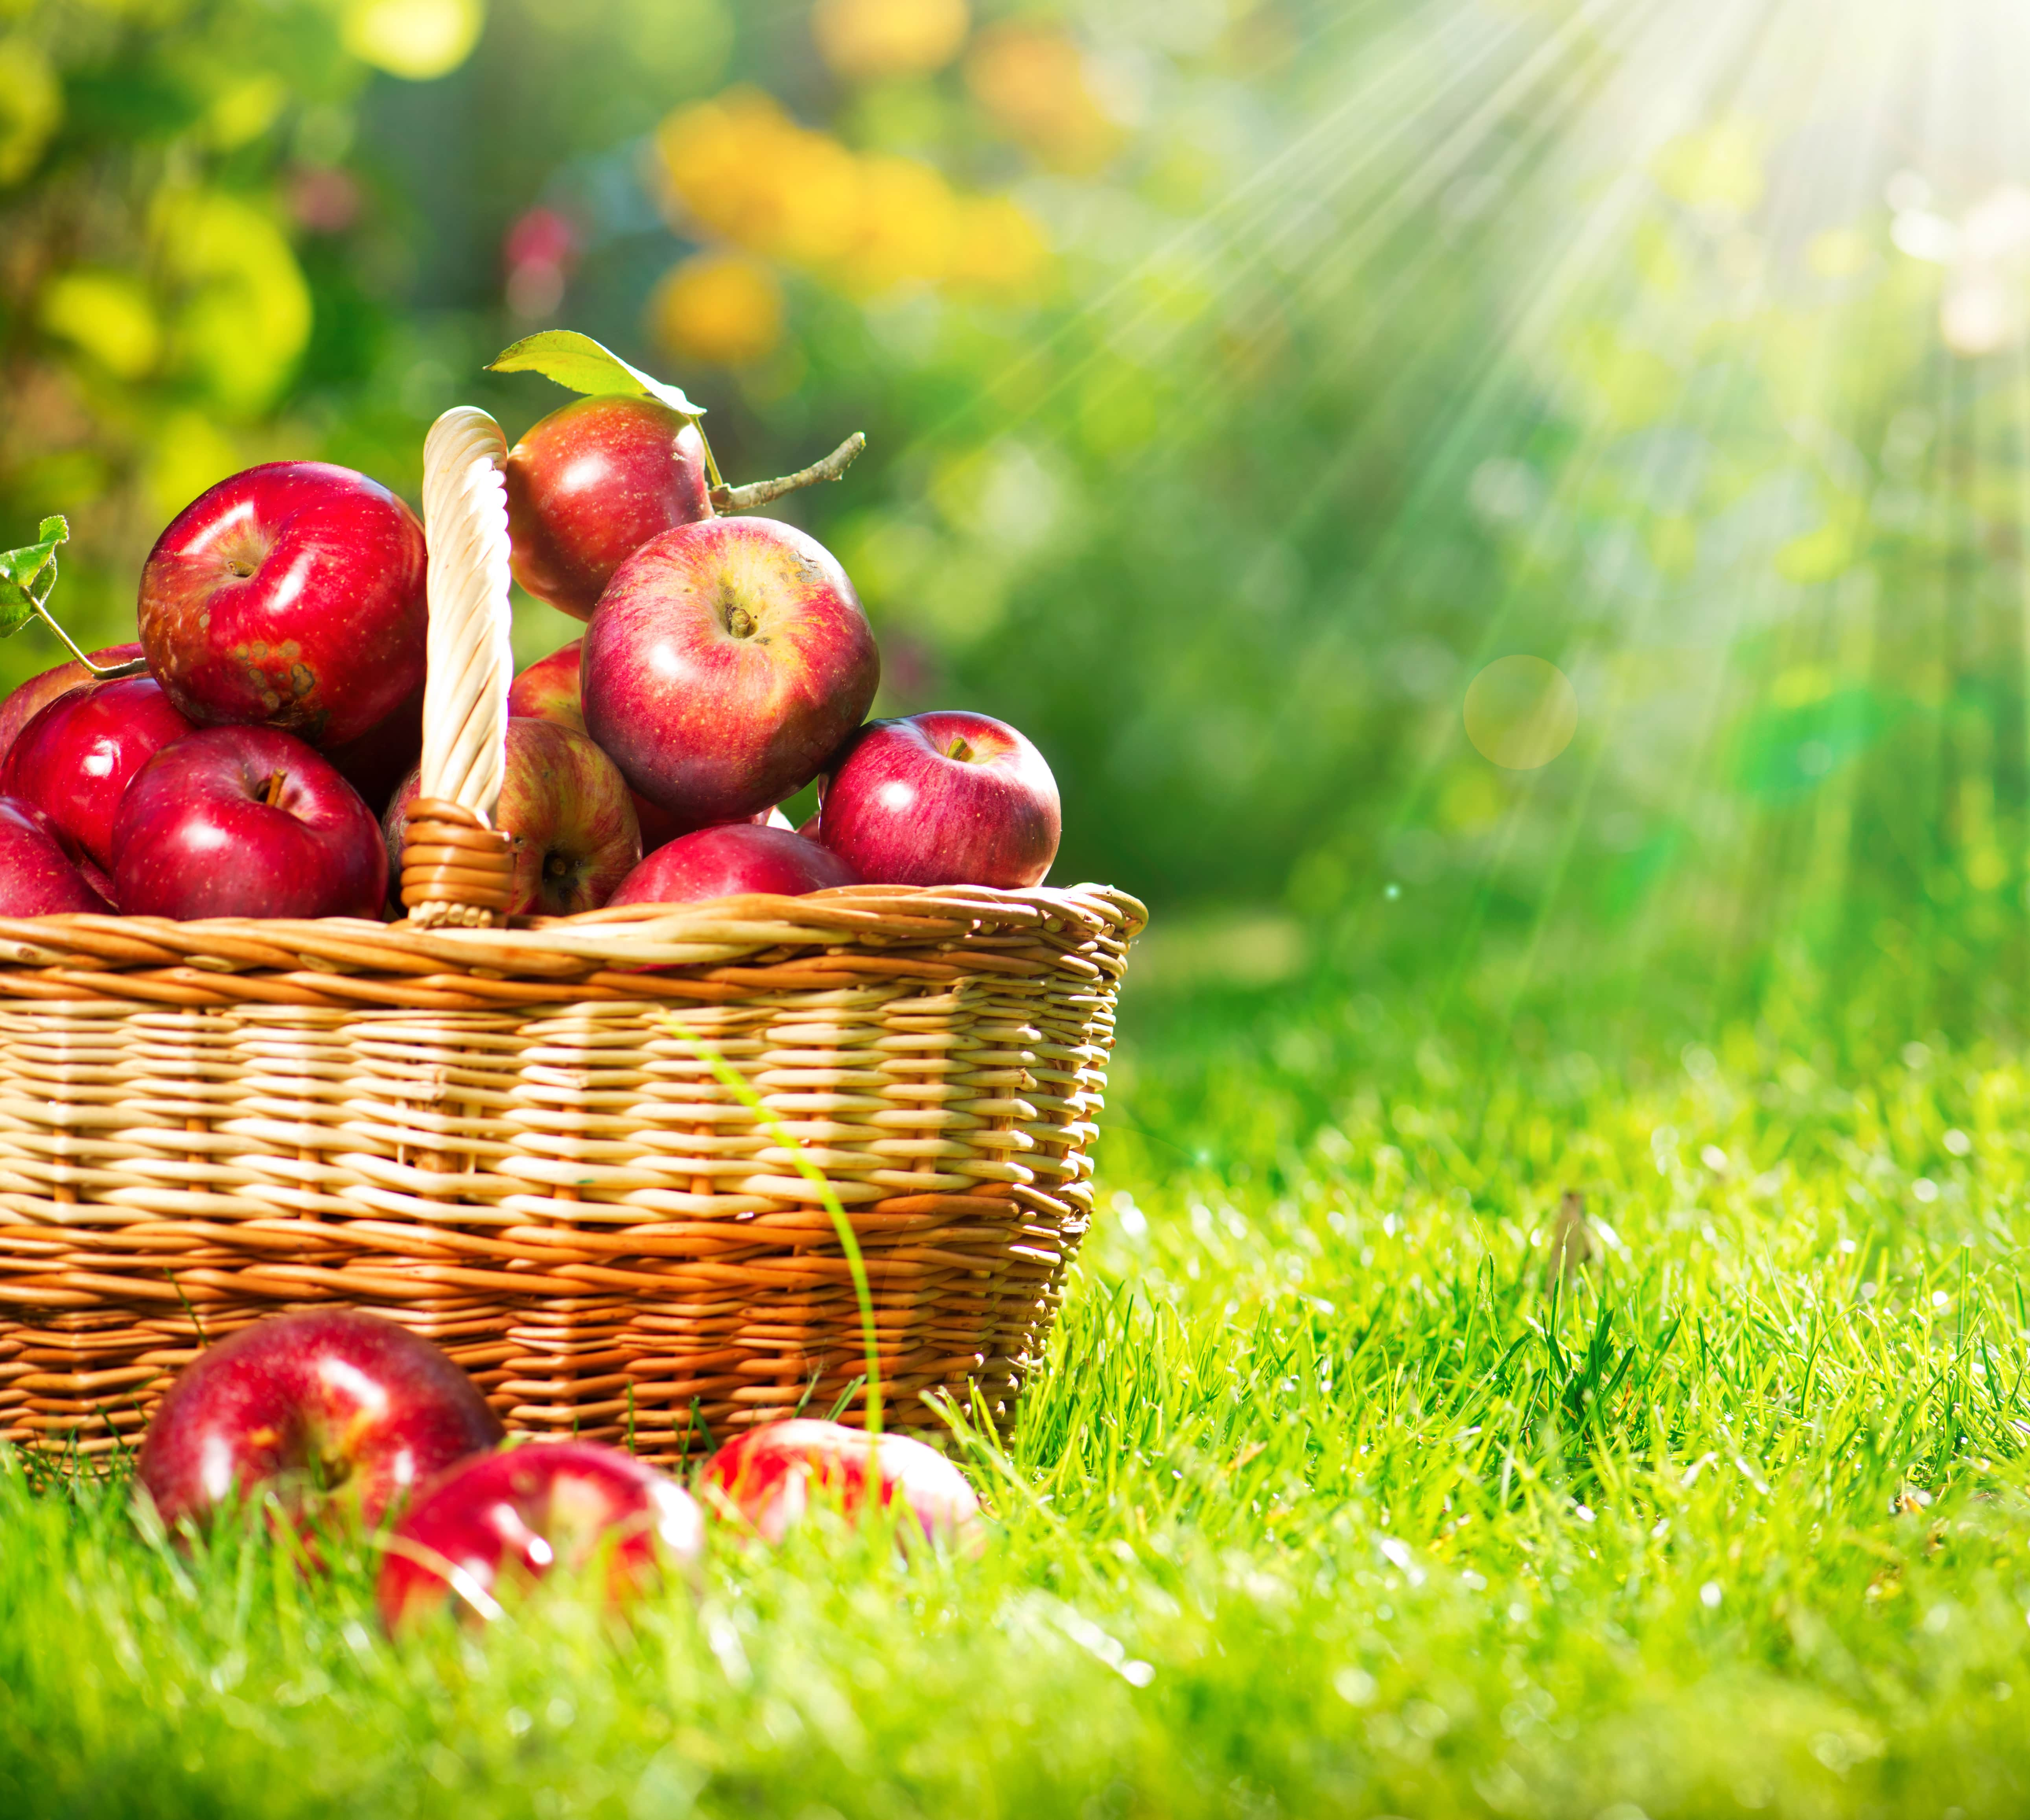 Apples: all you need to know about apples cultivation